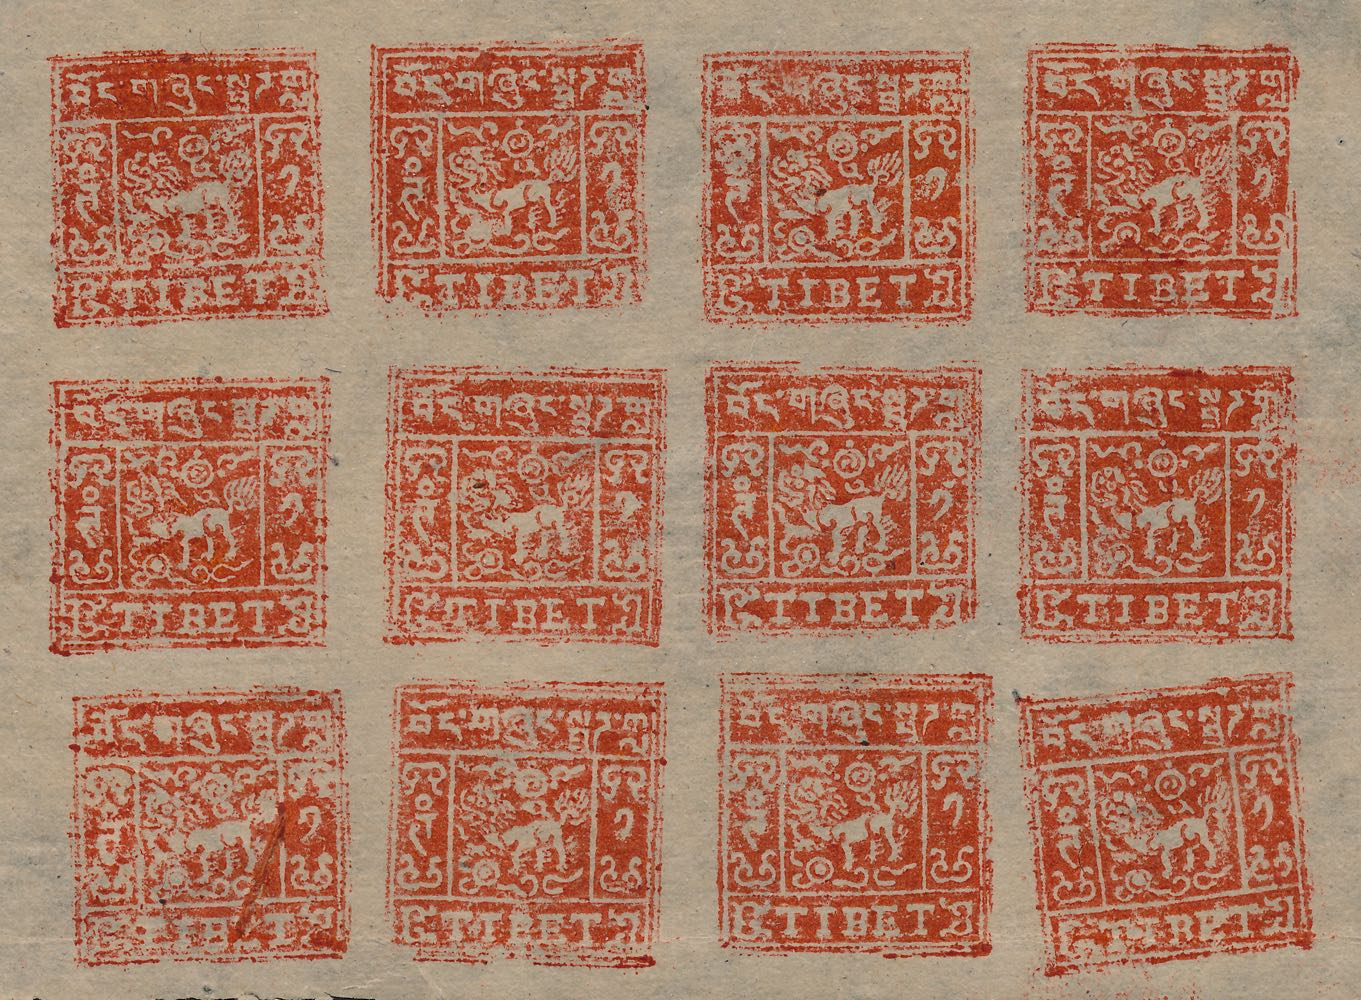 tibet_1933_1tr_genuine_sheet